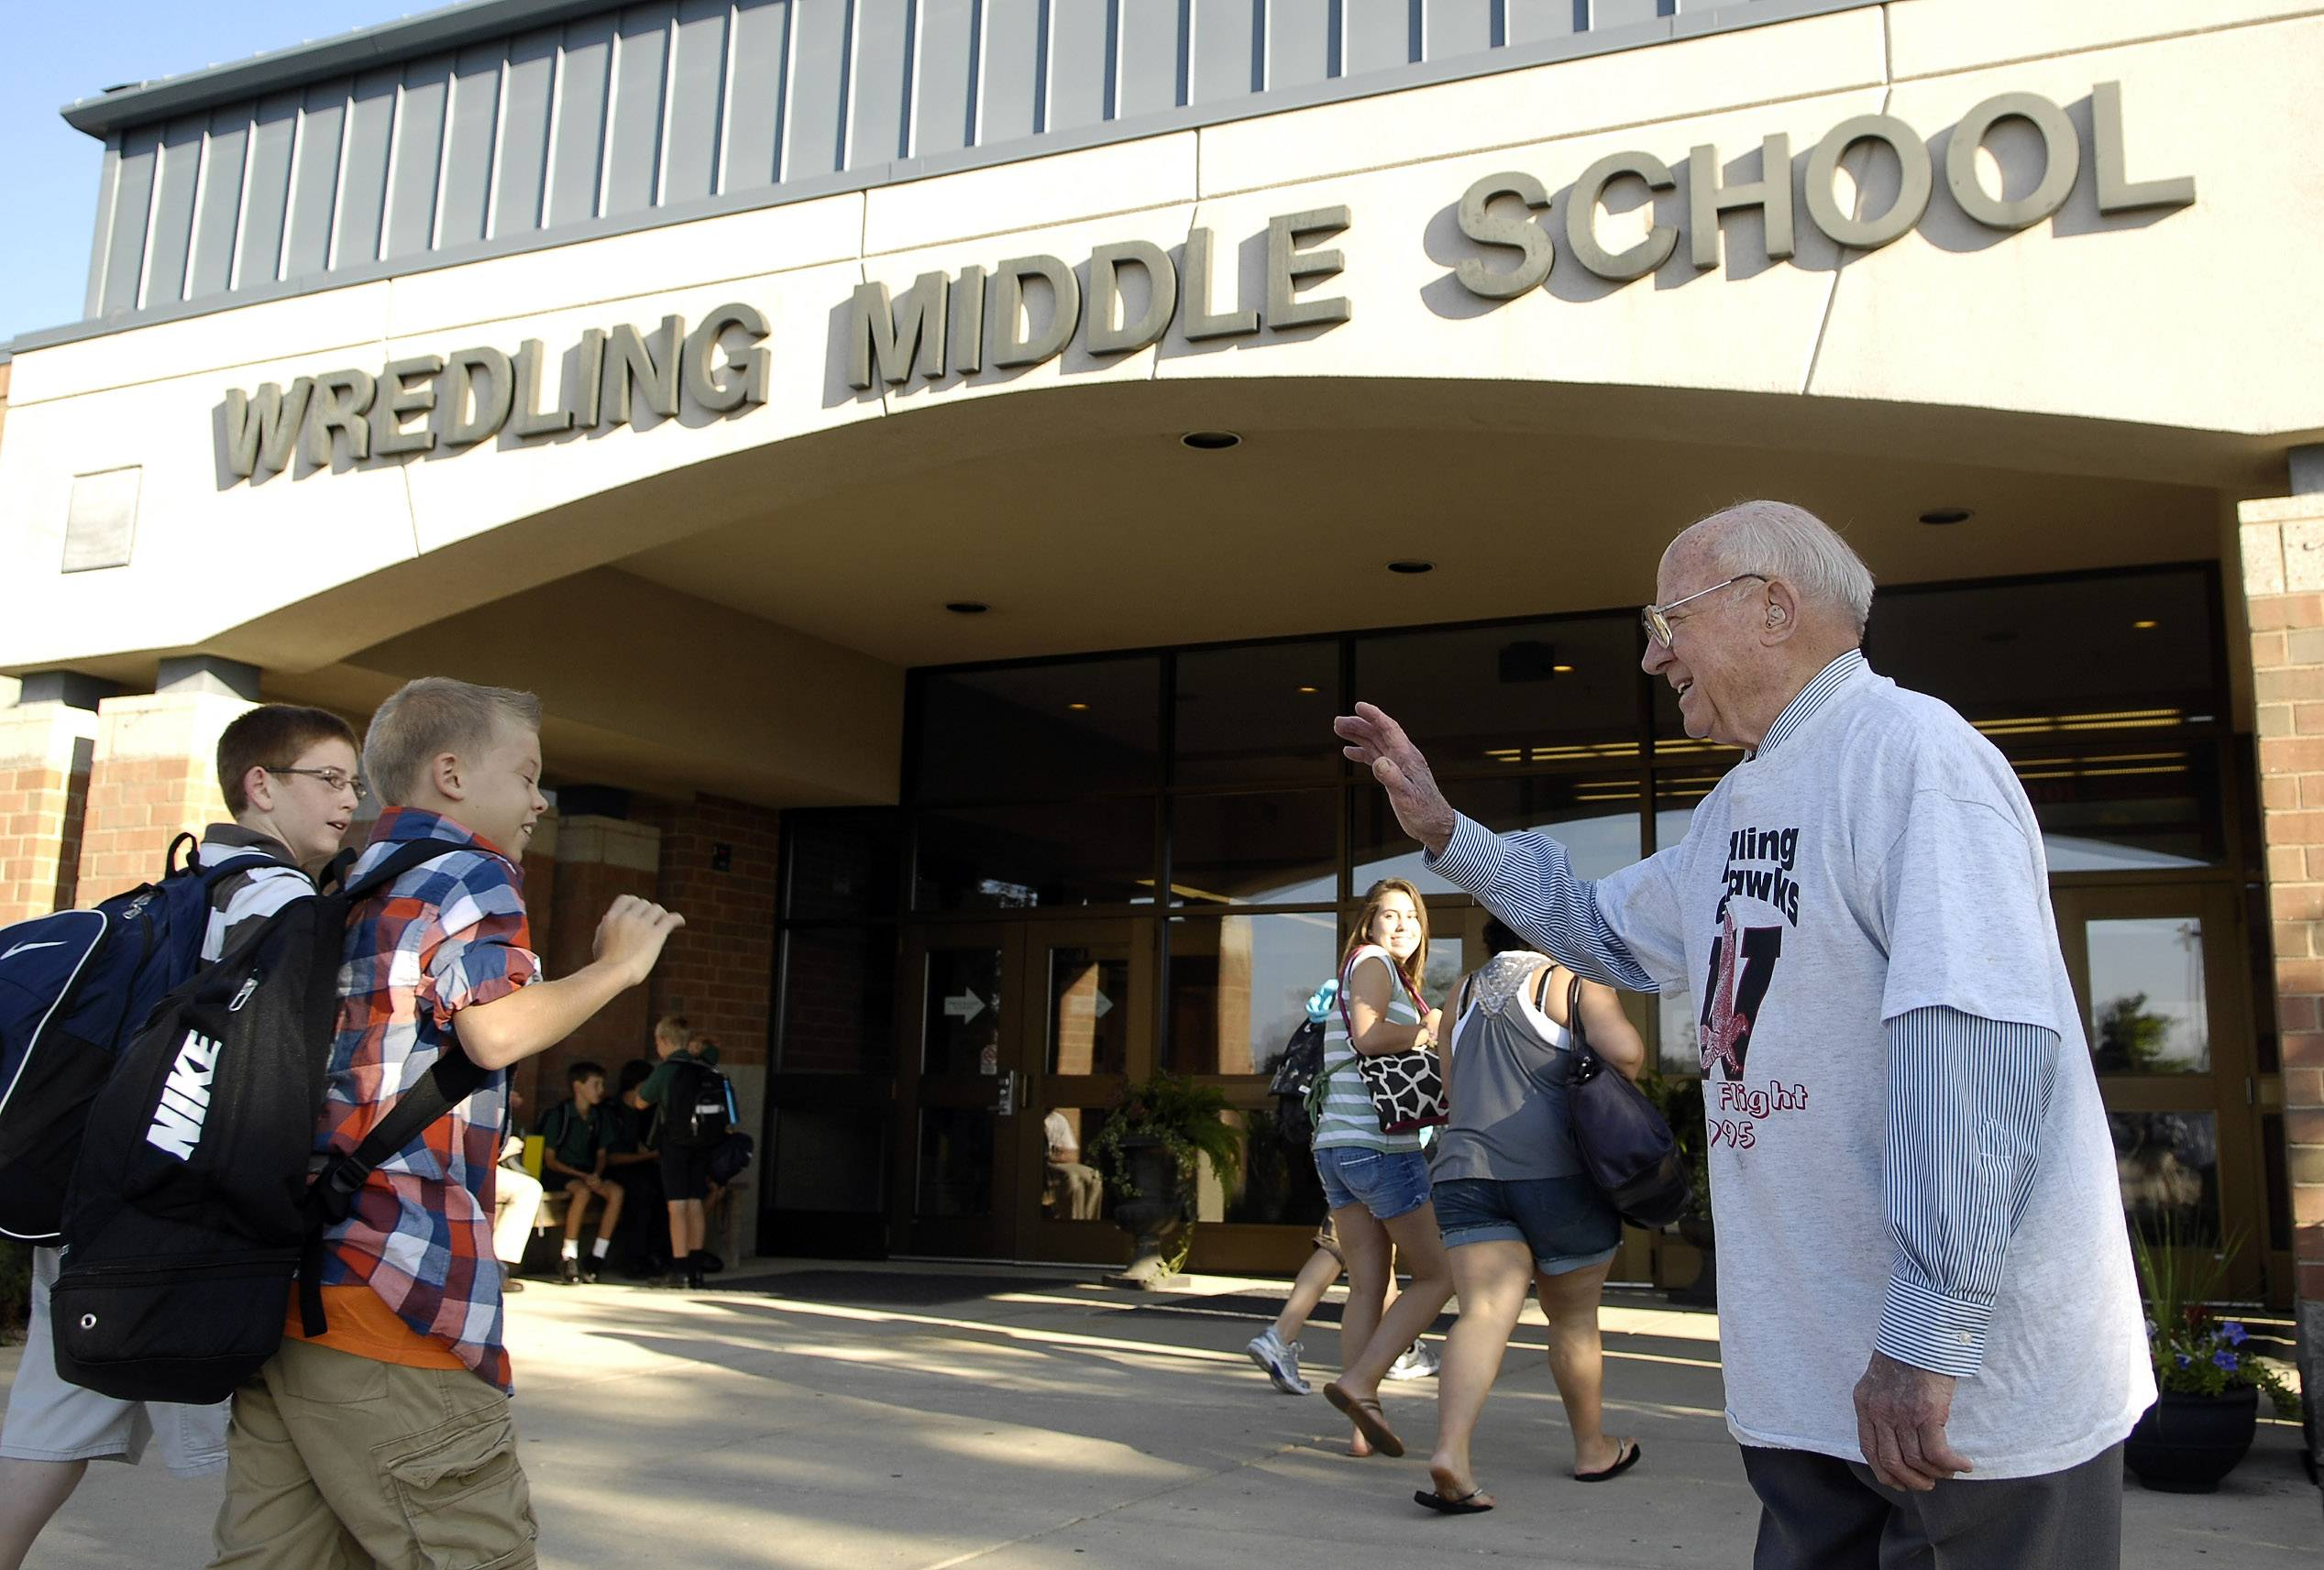 Former St. Charles schools superintendent John Wredling was known for greeting students on the first day of school, at the school that was named after him.